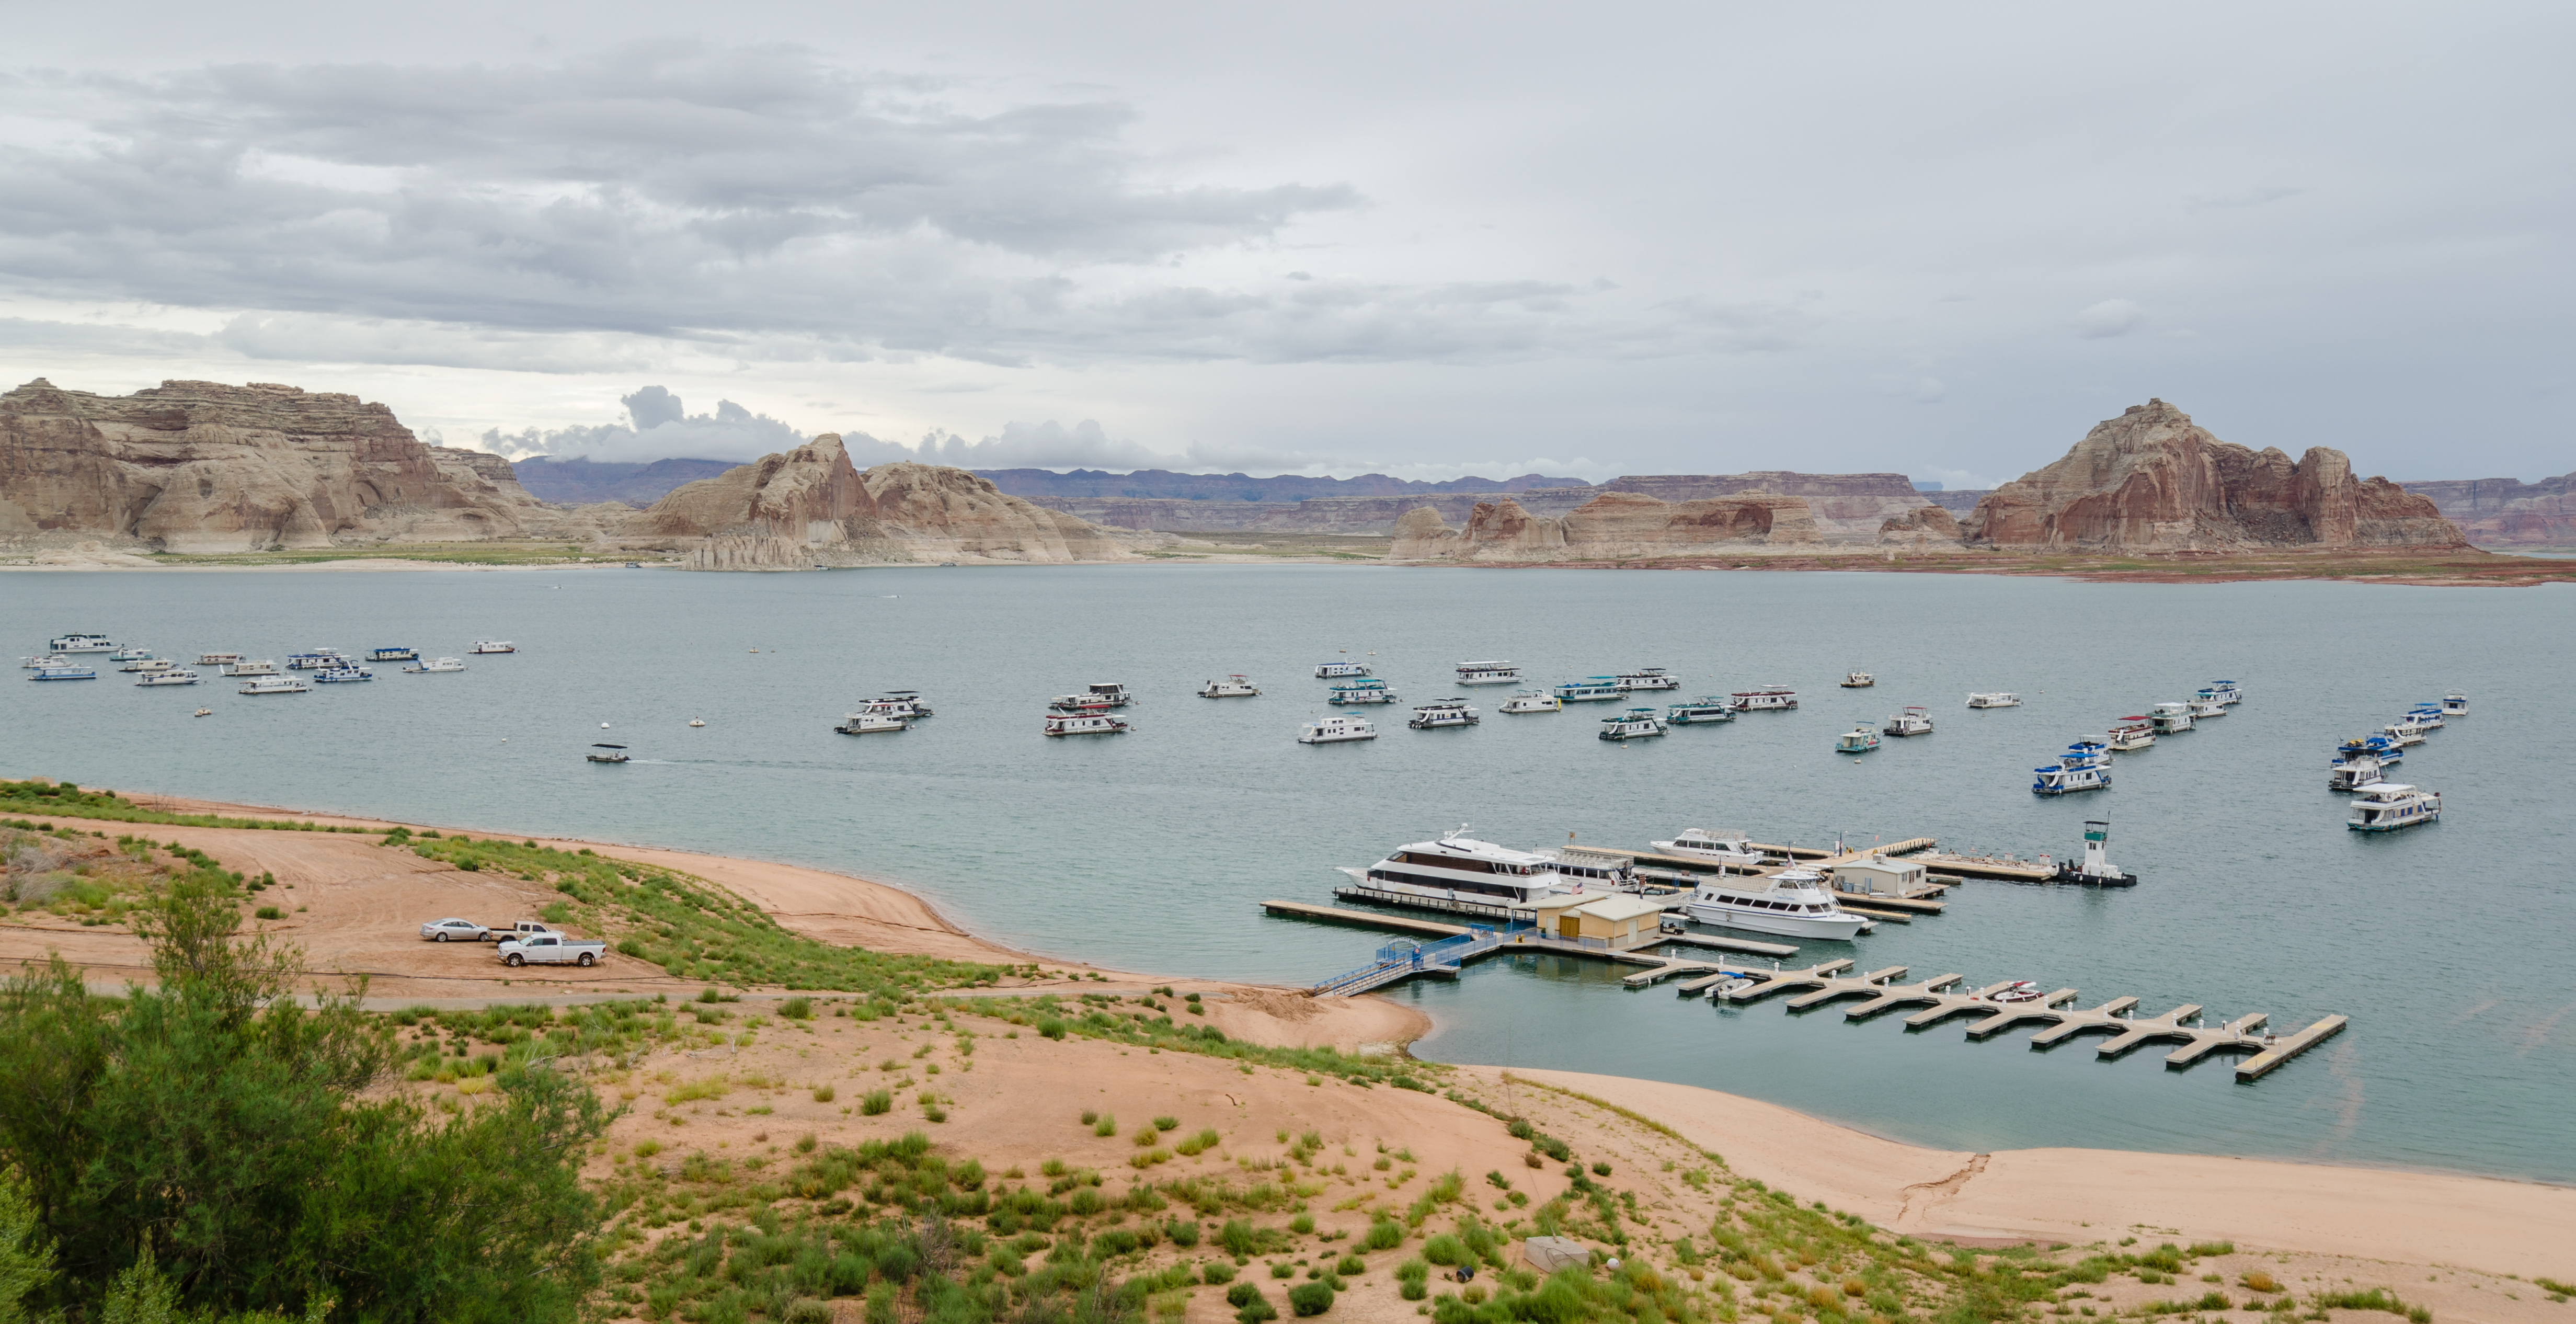 Lake Powell's Record Low Water Levels Threaten Power for Millions